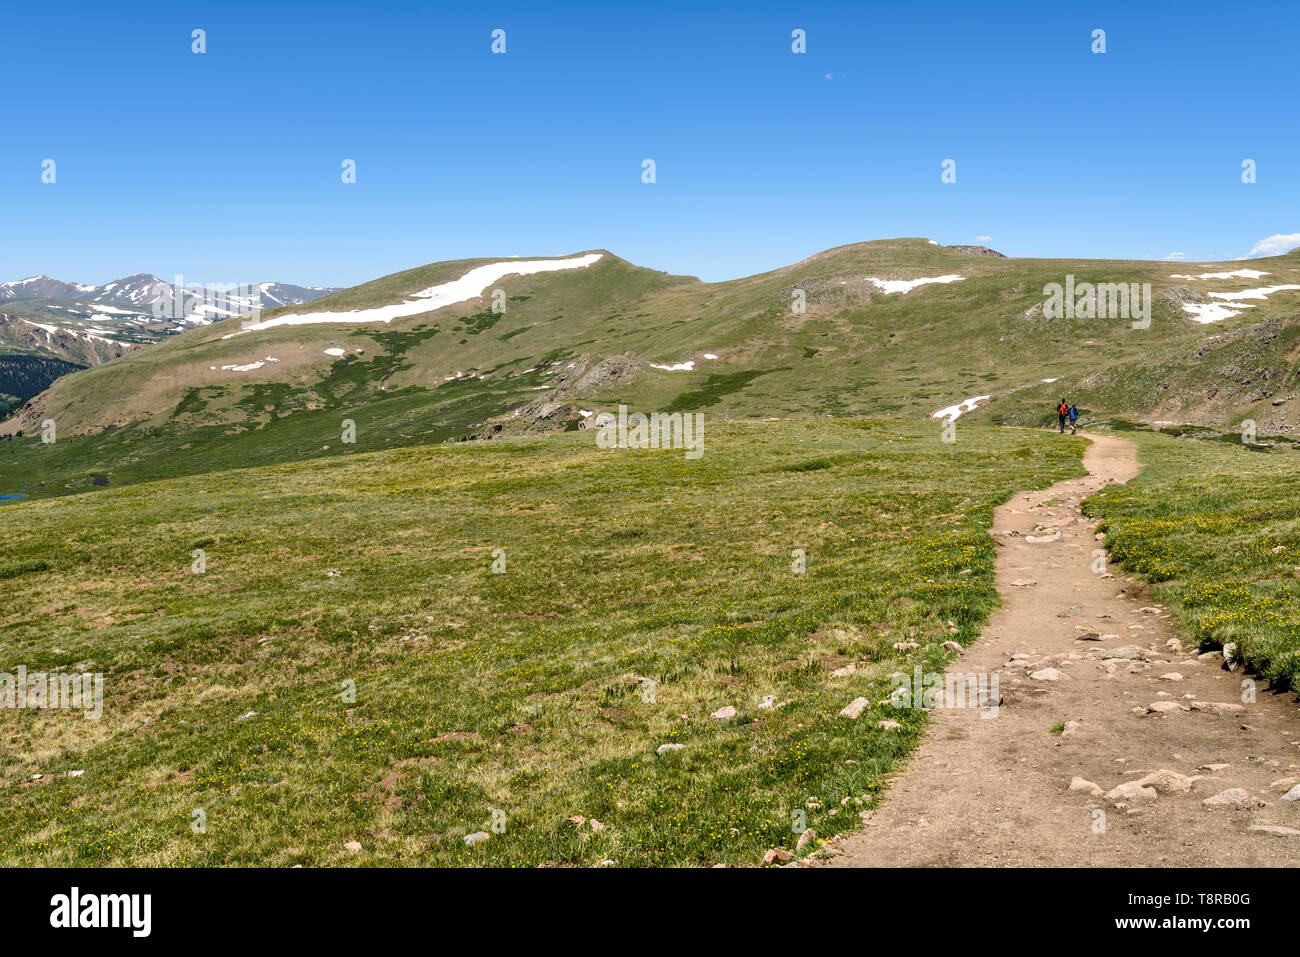 Hiking in Spring Mountains - A hiking trail winding through a meadow at hilltop in Front Range of Rocky Mountains, Colorado, USA. - Stock Image